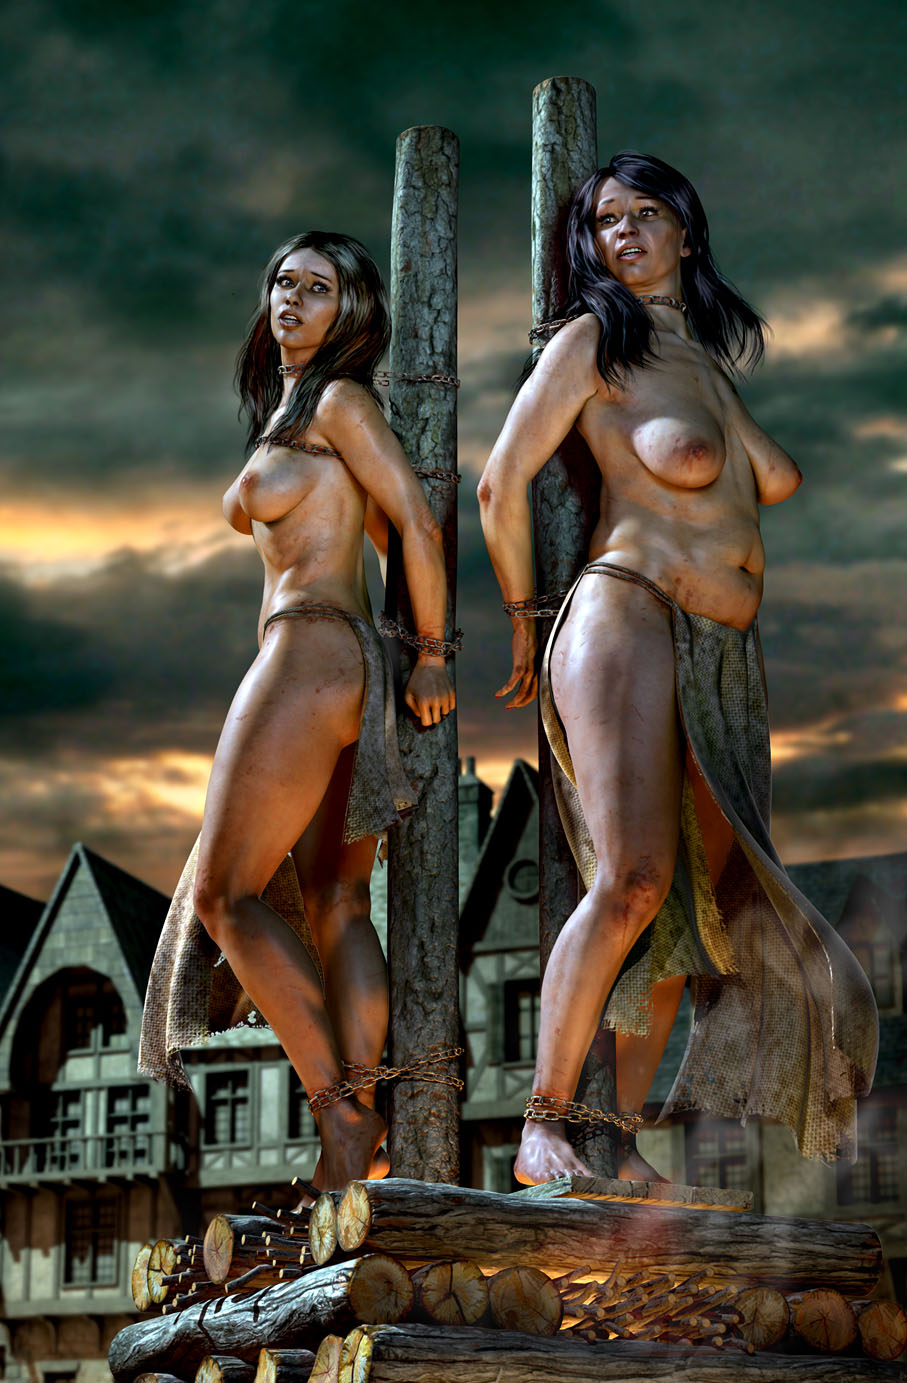 pirate Nude fantasy art